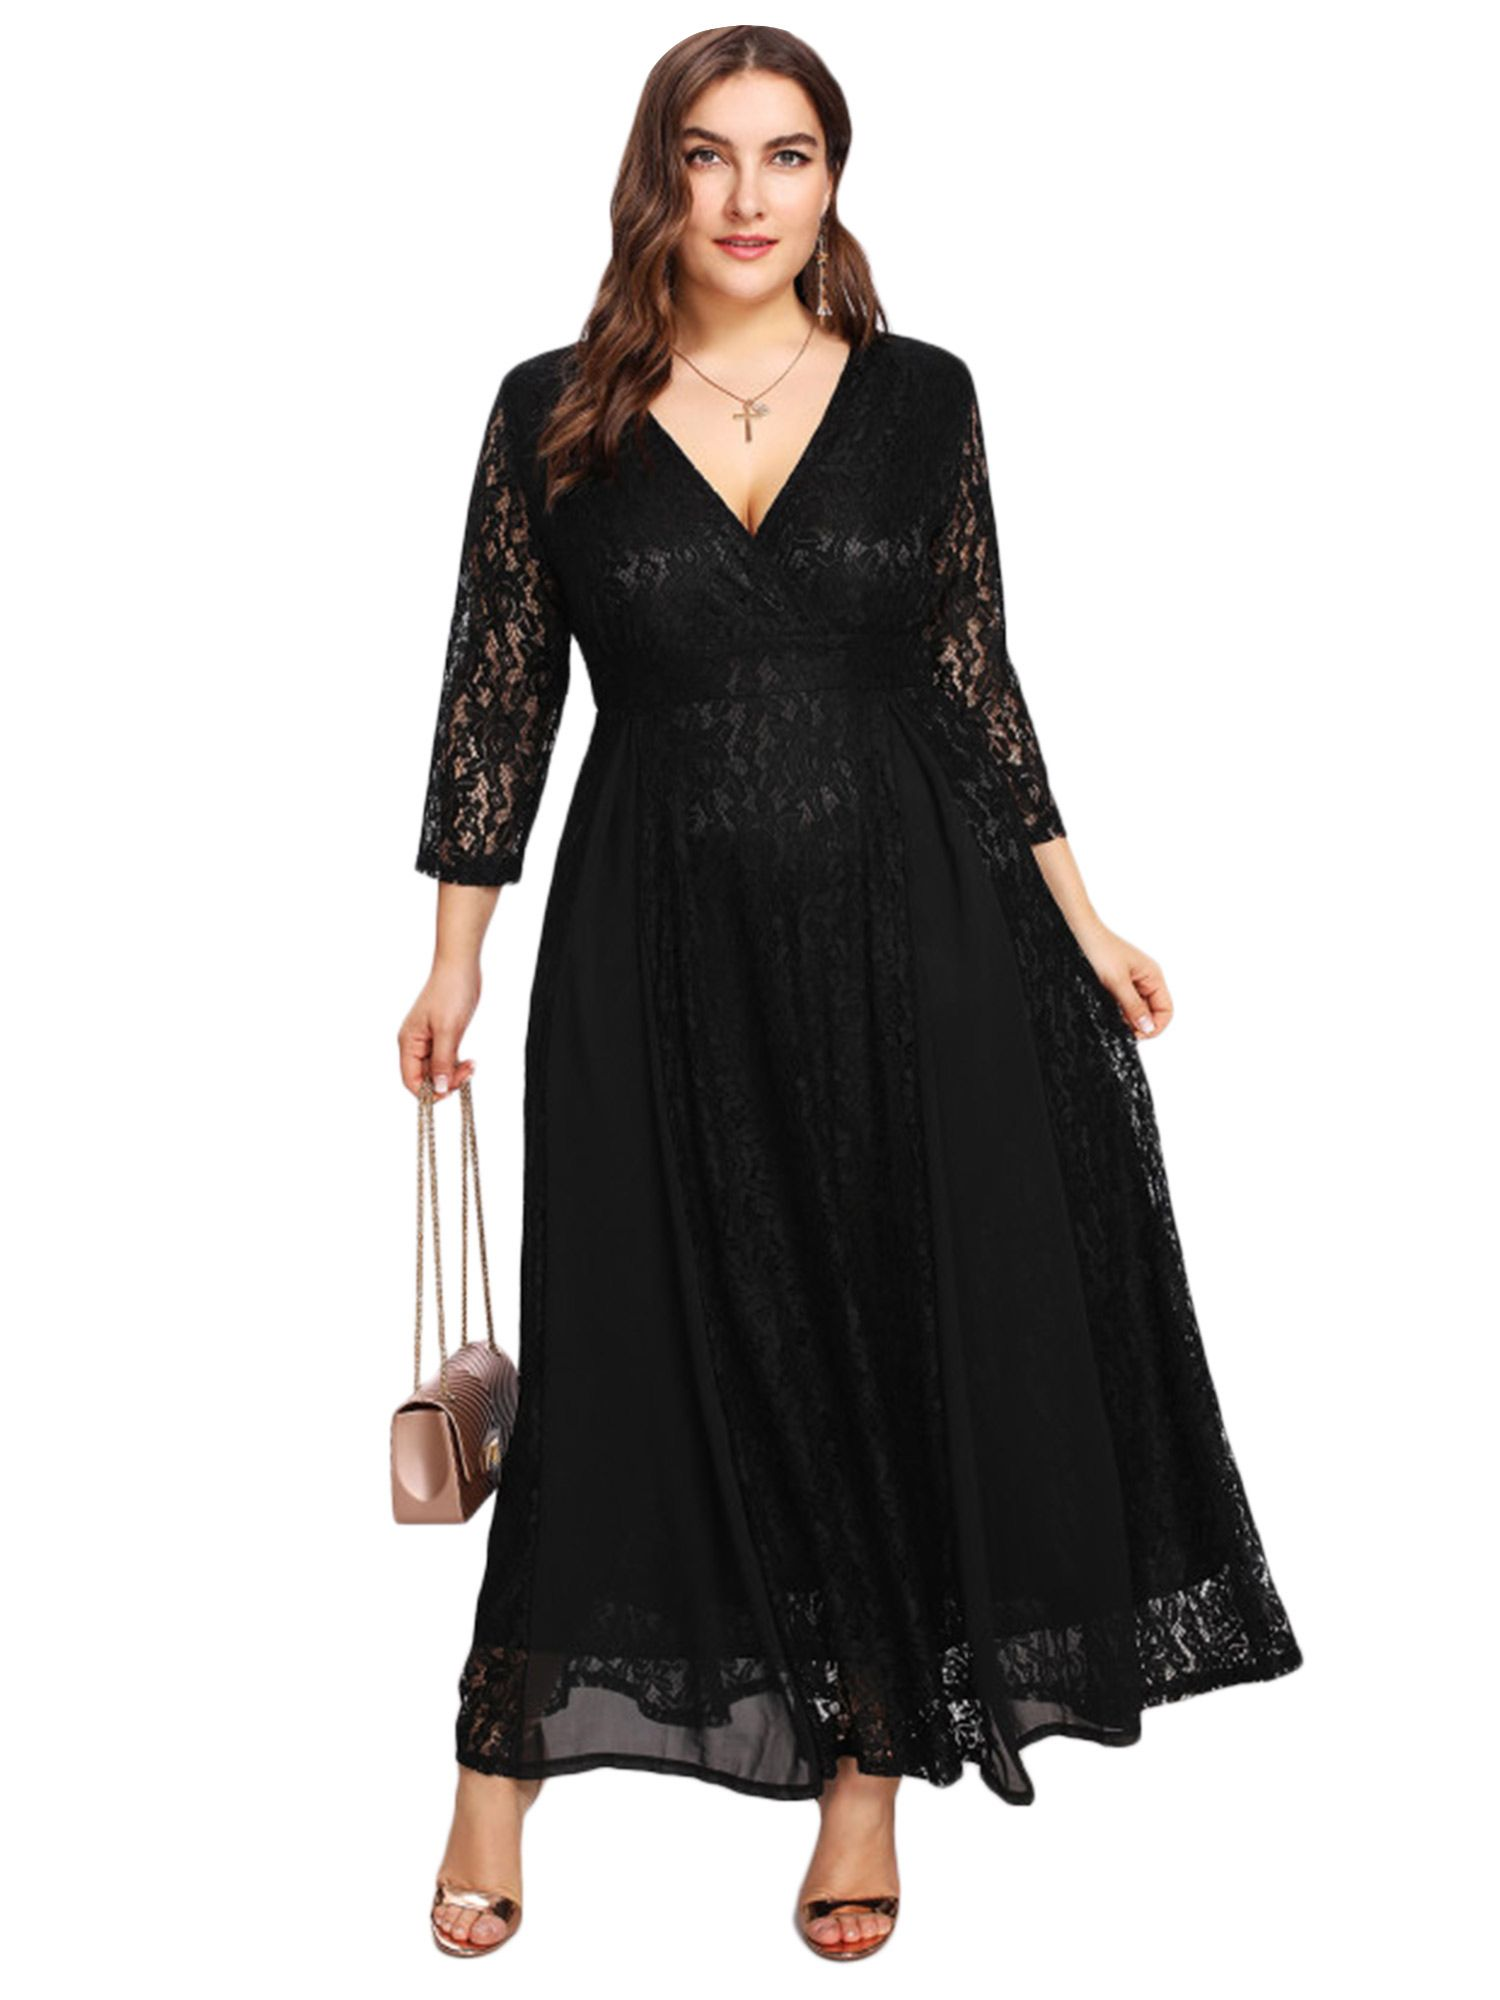 369a2315d3198 Plus Size High Waist Lace Overlay Evening Maxi Dress | Maxi dresses ...